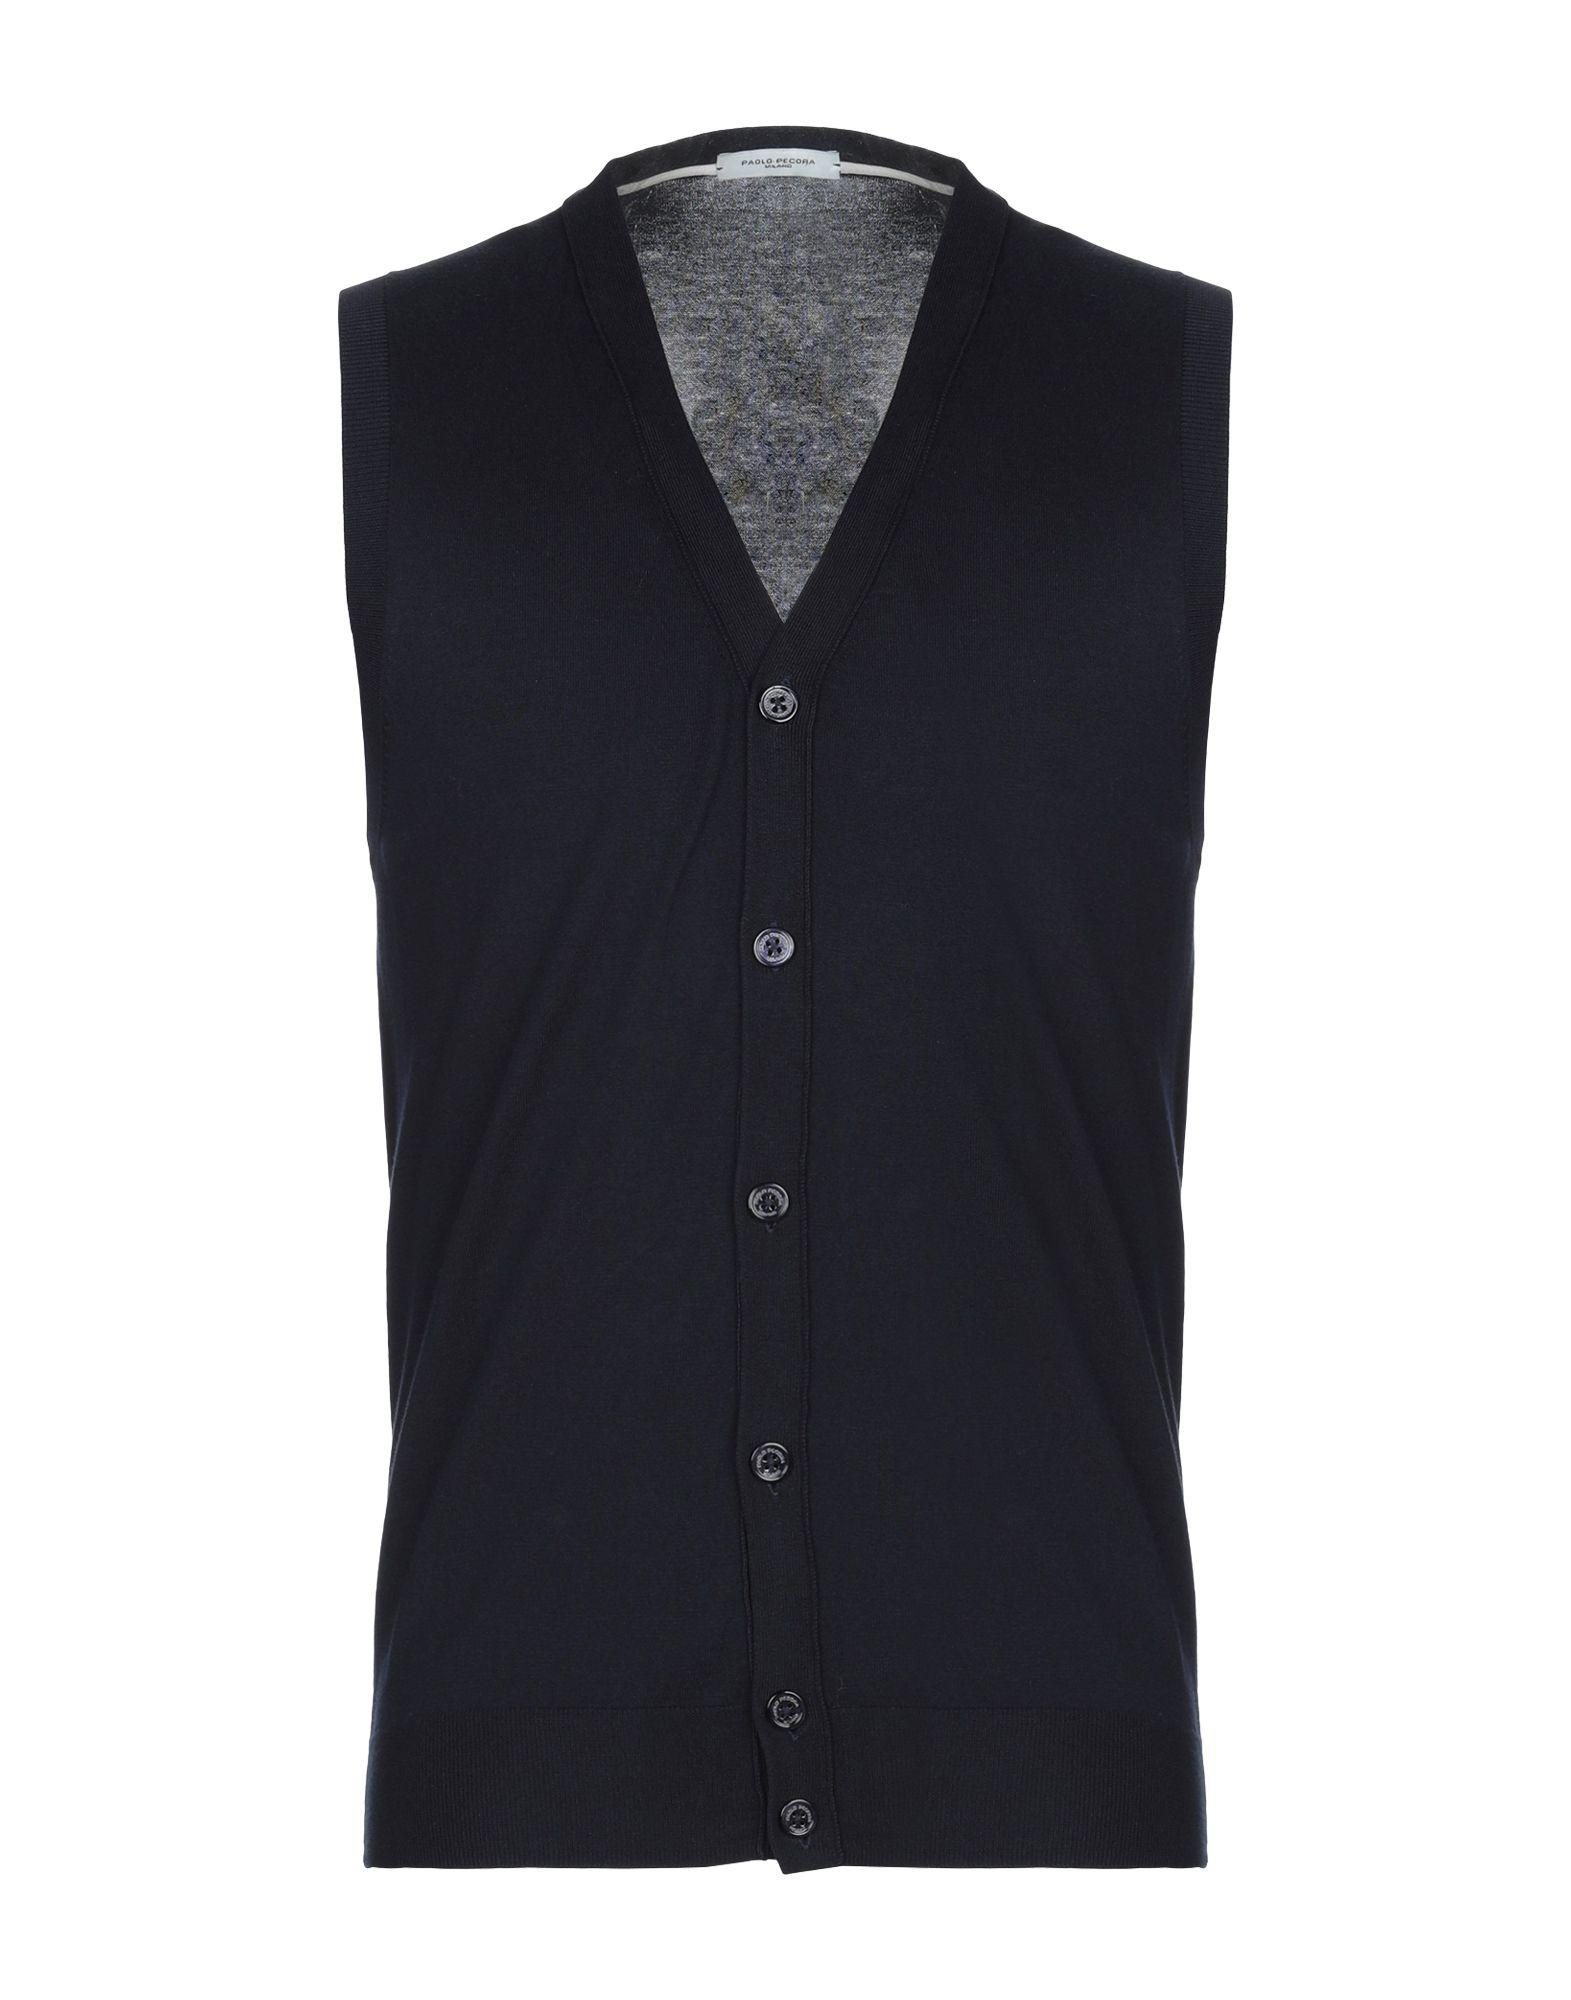 c18af60bb2a71 Paolo Pecora Cardigan in Blue for Men - Save 13.043478260869563% - Lyst